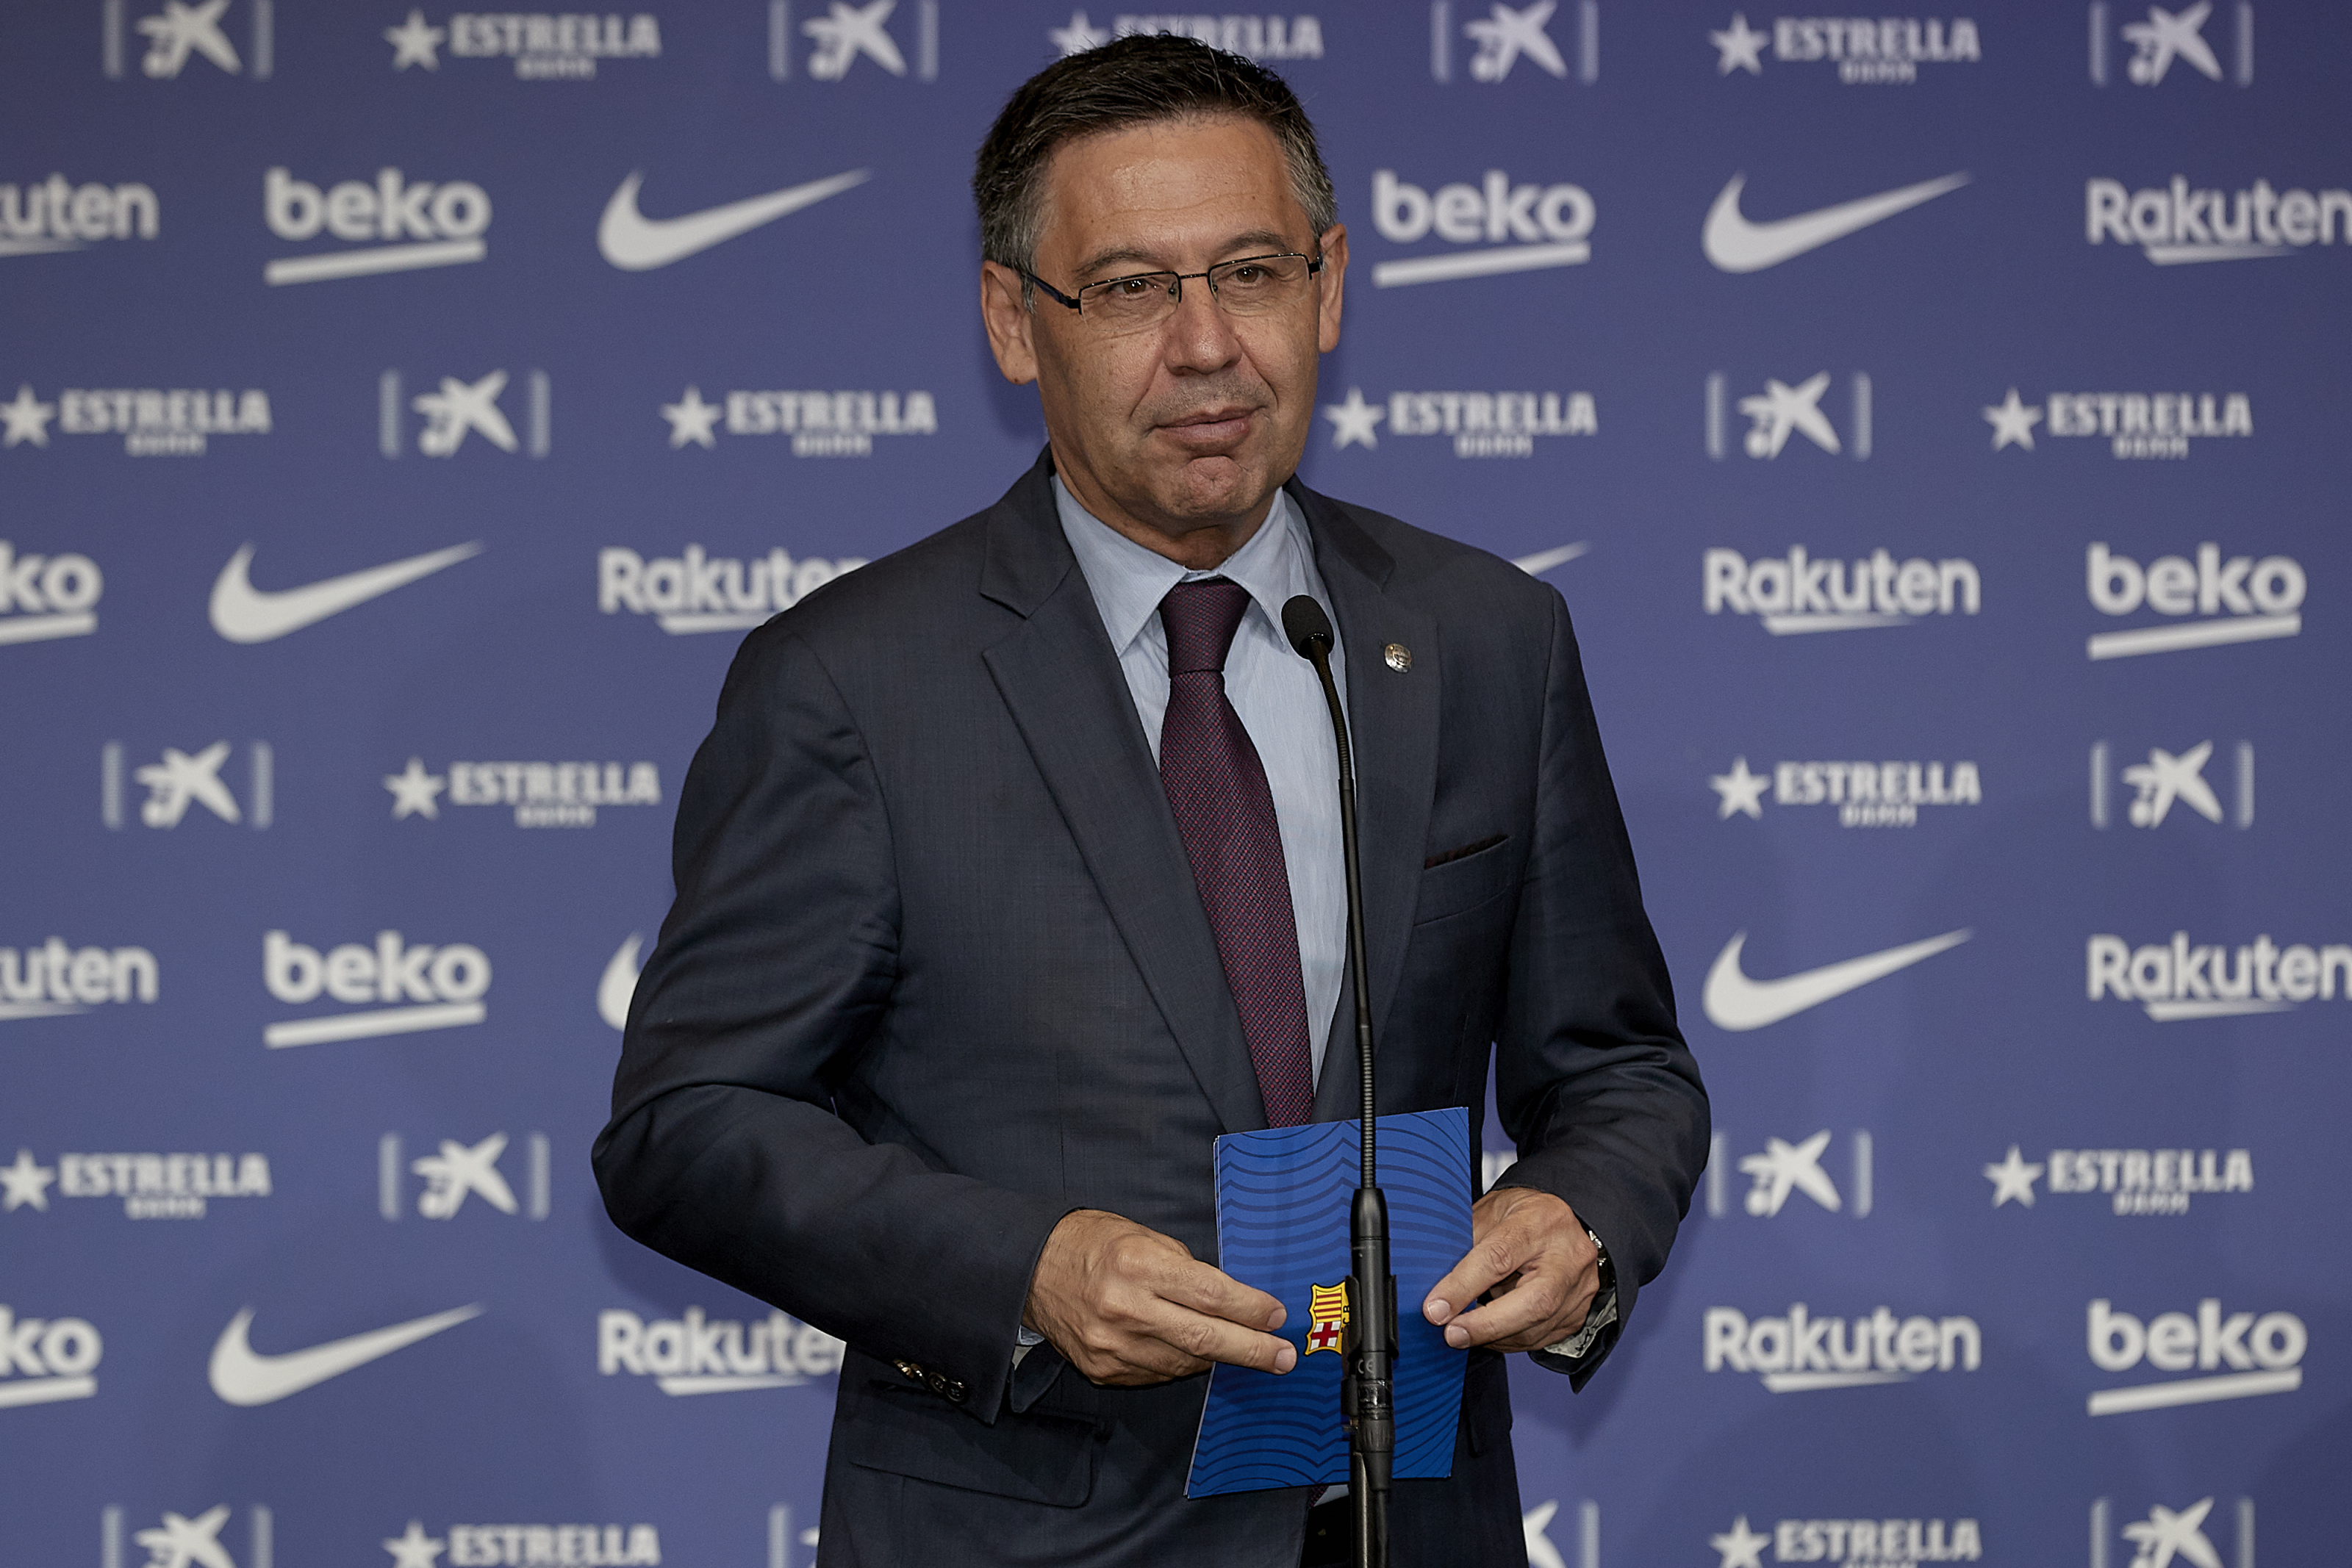 Barcelona's biggest failed signing tipped to make Camp Nou move